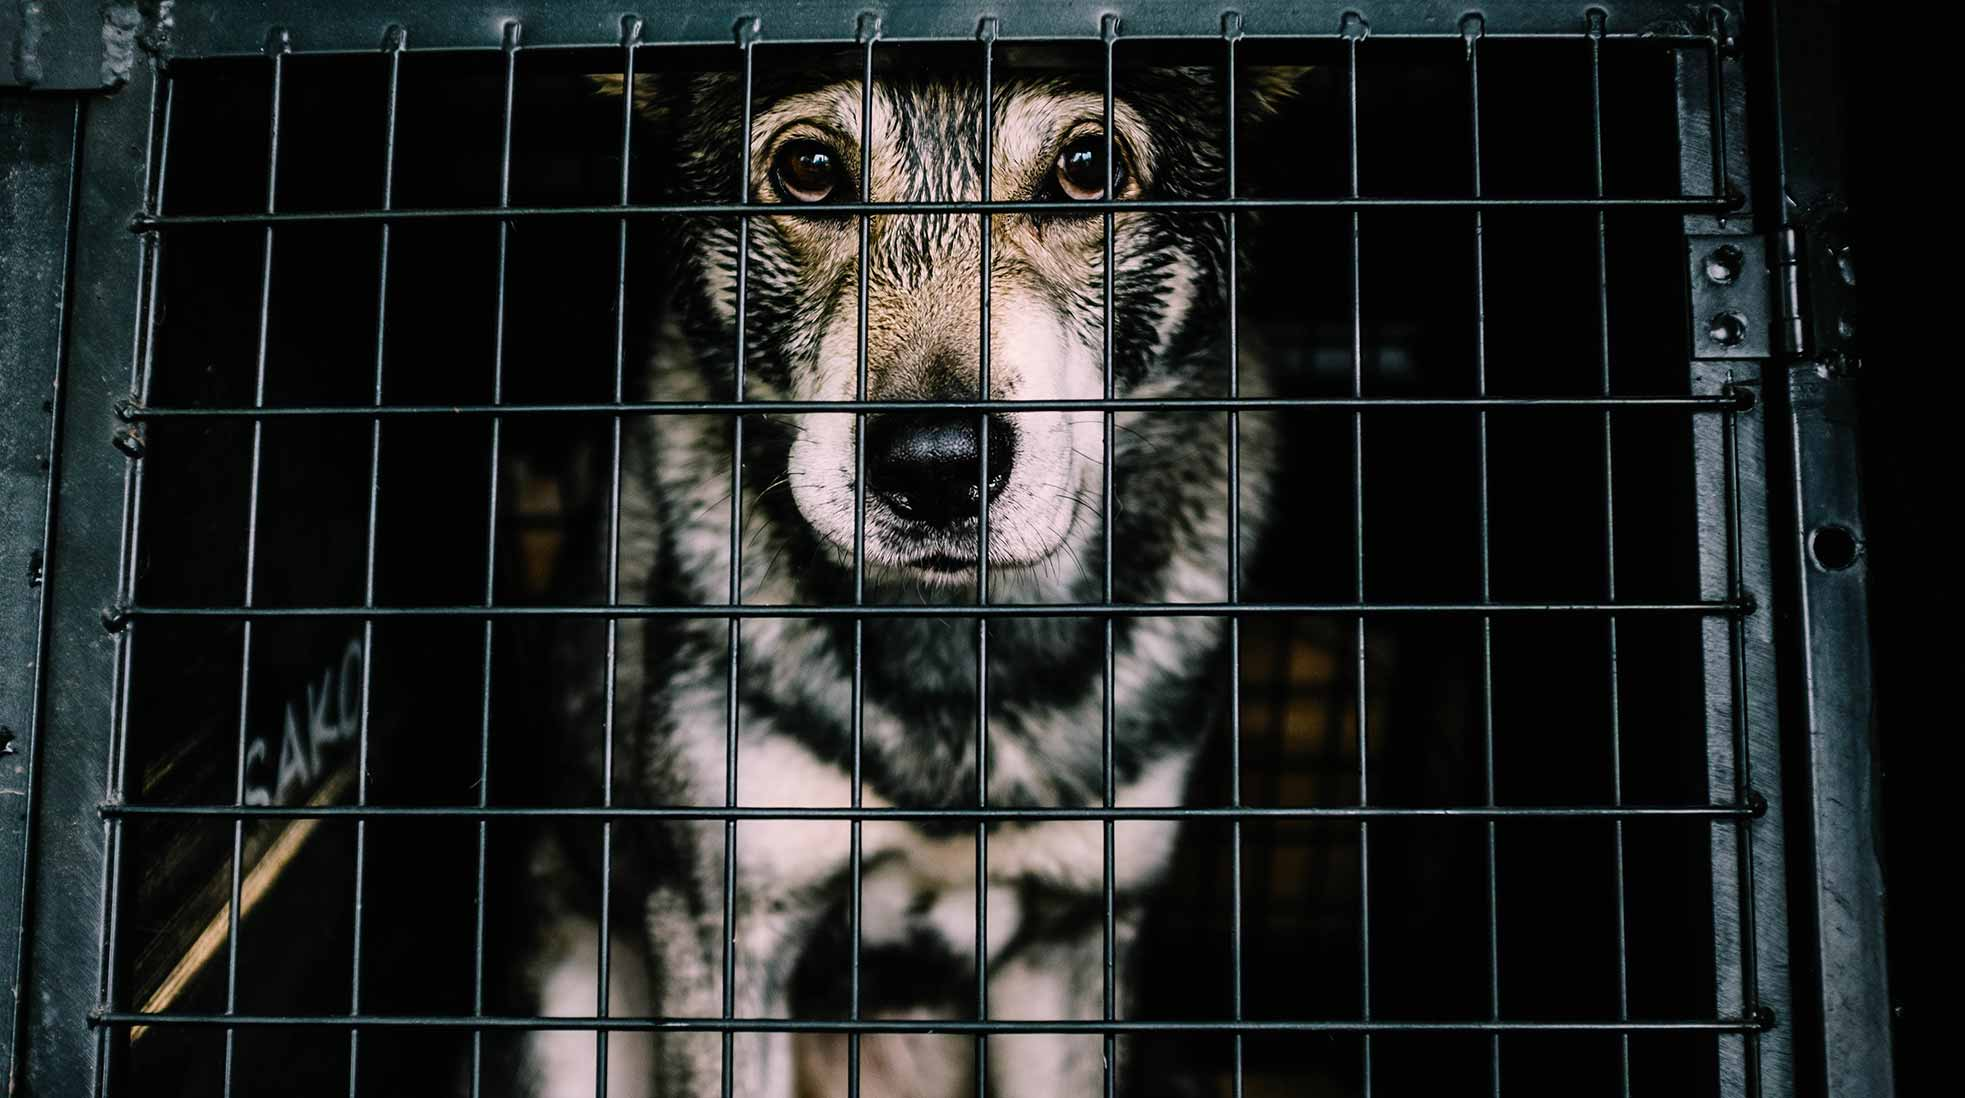 A black and grey dog in a cage